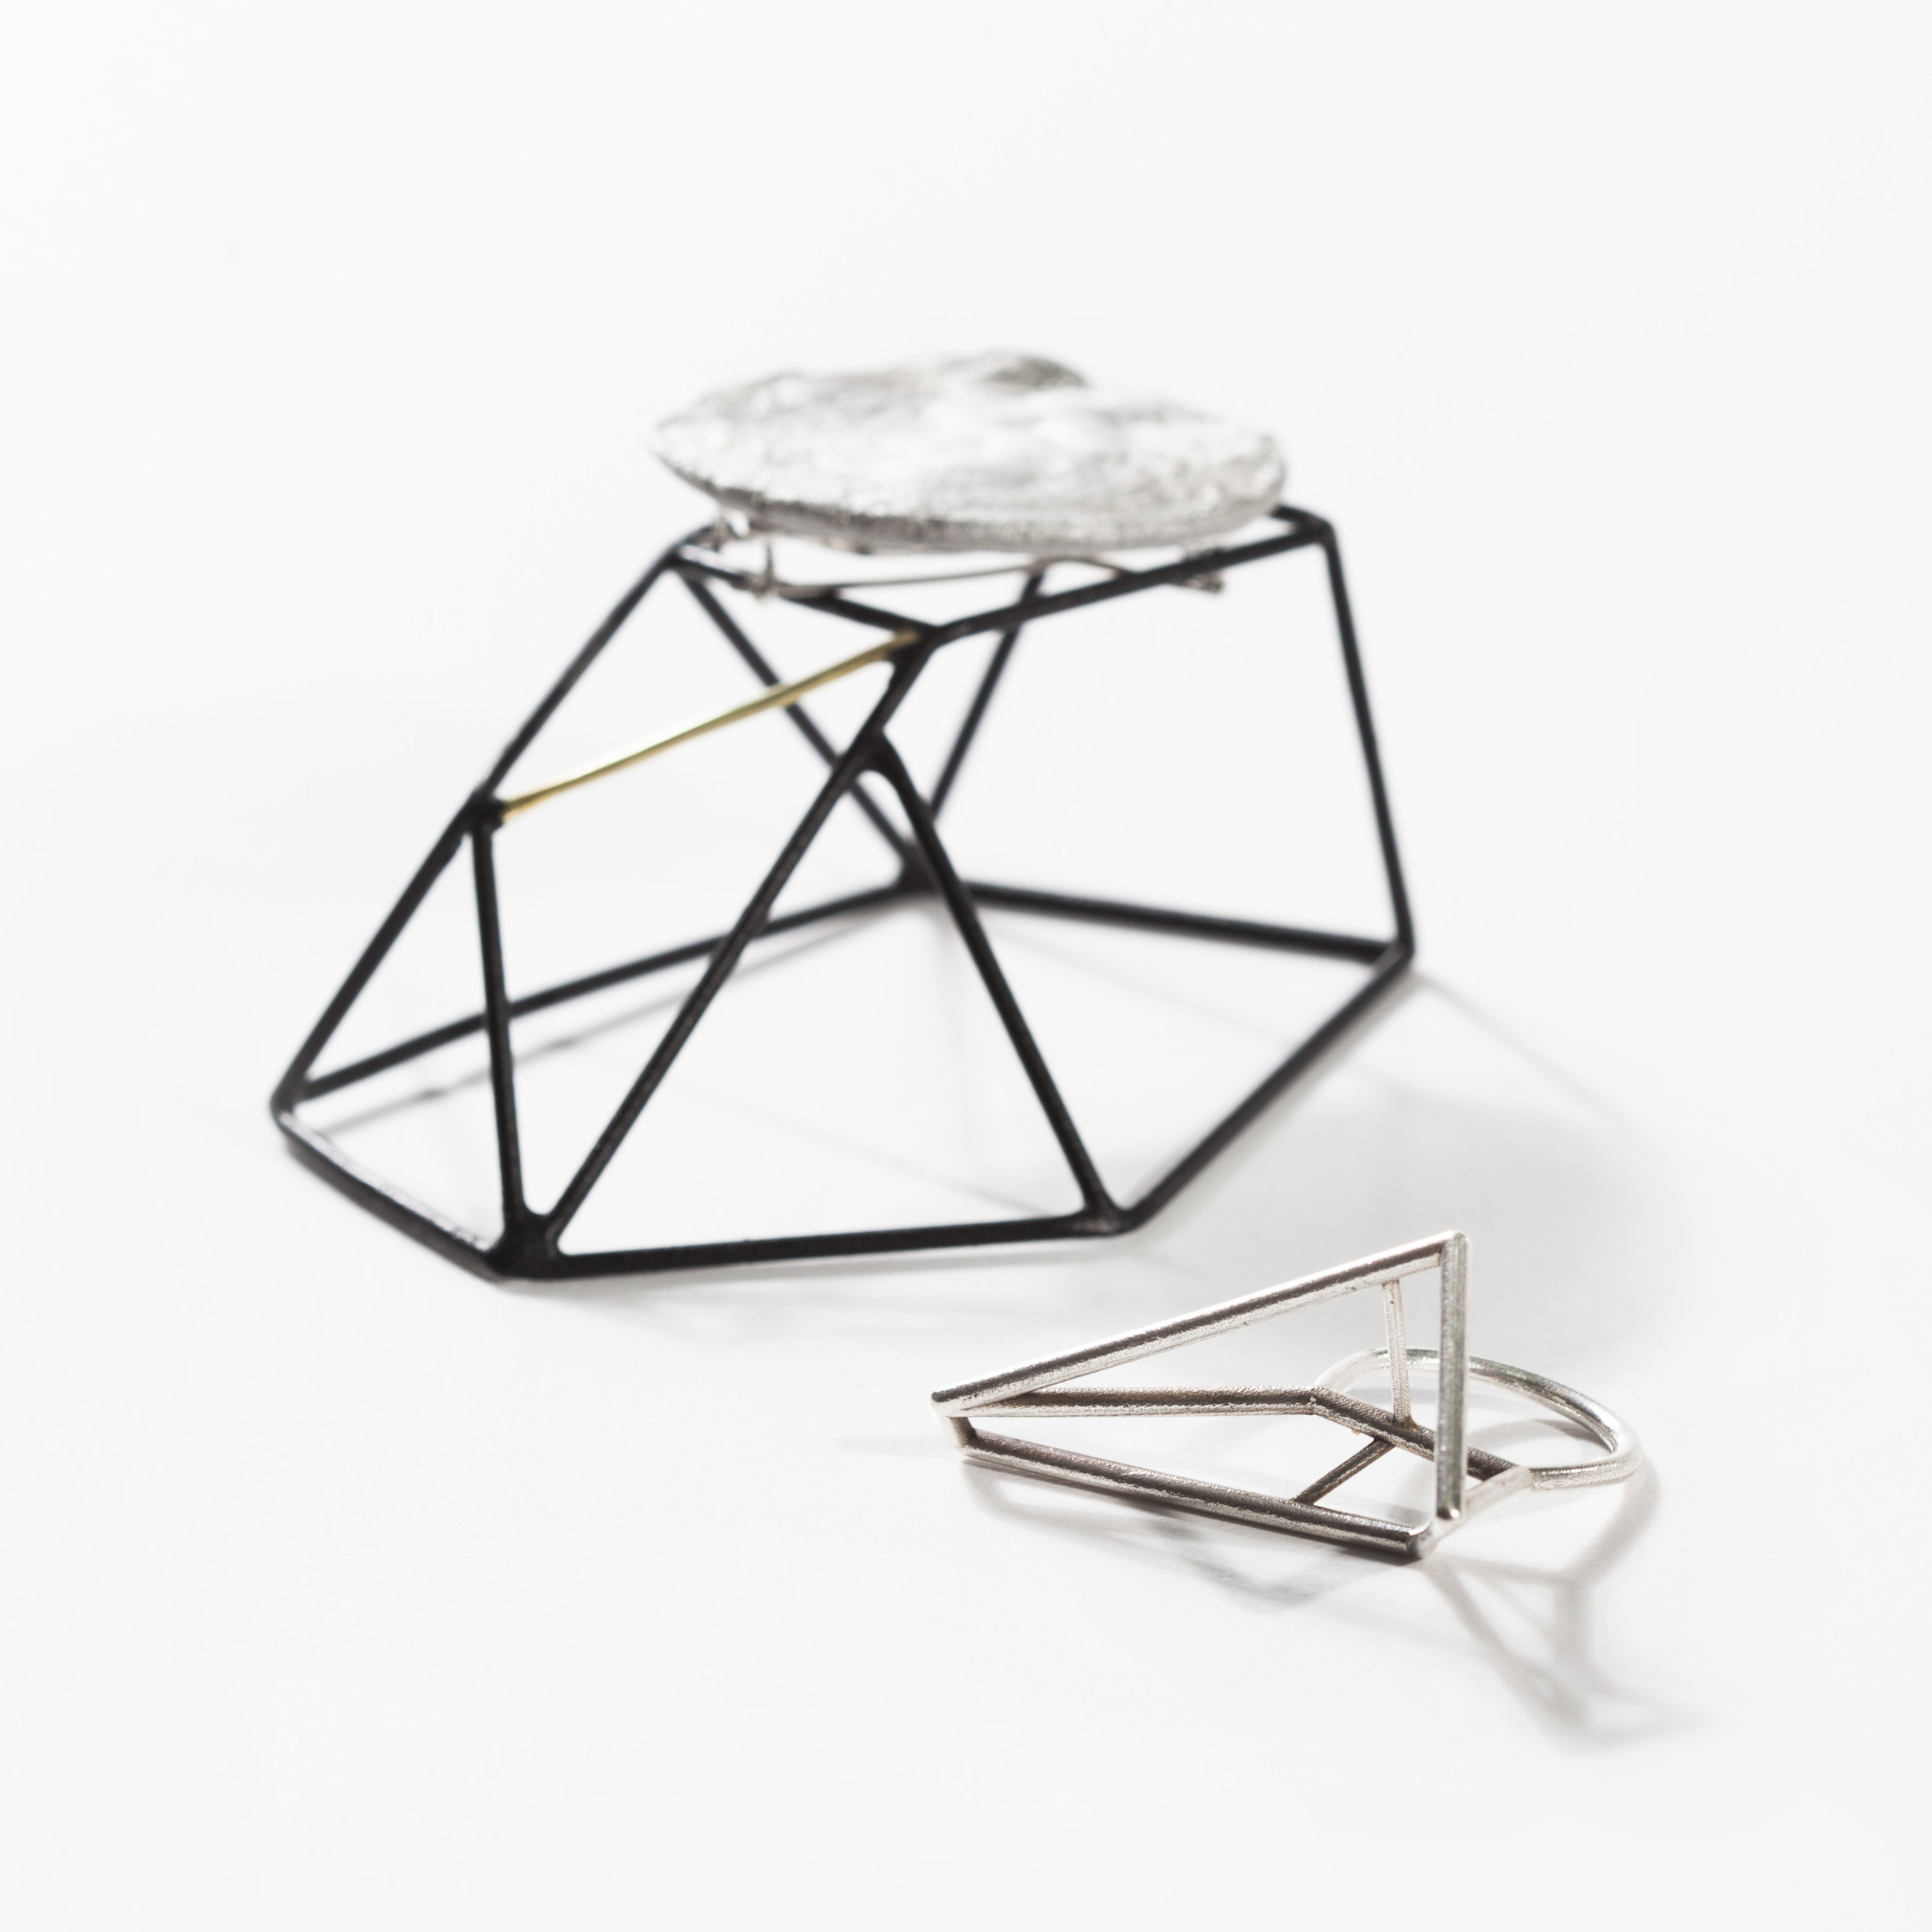 Emma-Field-Geometric-Sculpture-Juncture-Geometric-Ring.jpg